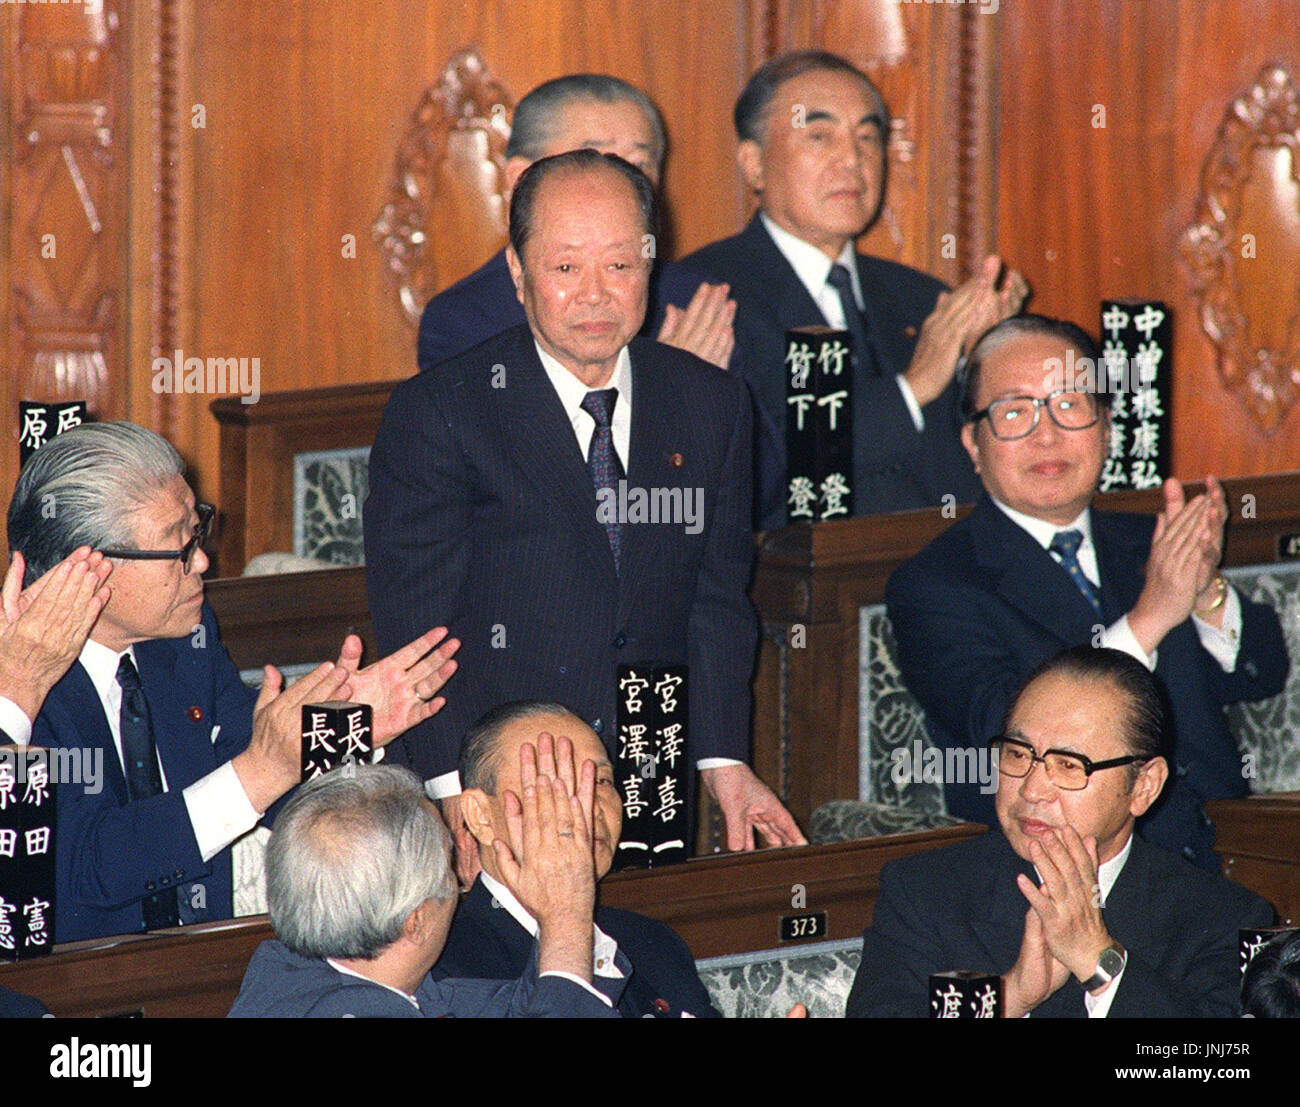 TOKYO, Japan - Former Prime Minister Kiichi Miyazawa of the Liberal  Democratic Party, who announced his retirement